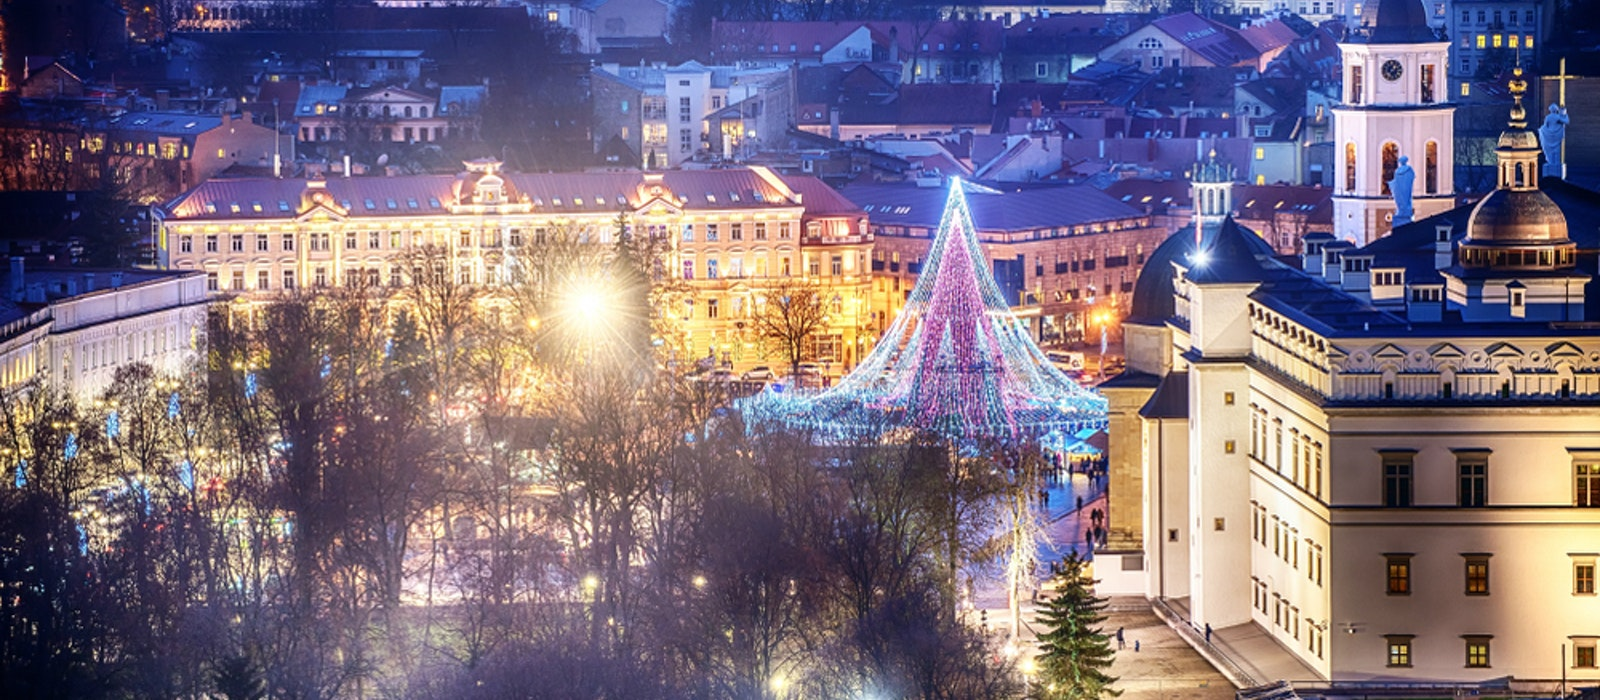 original hero vilnius lithuania christmasjpg1539655120ixlibrails 03 - Best European Cities For Christmas